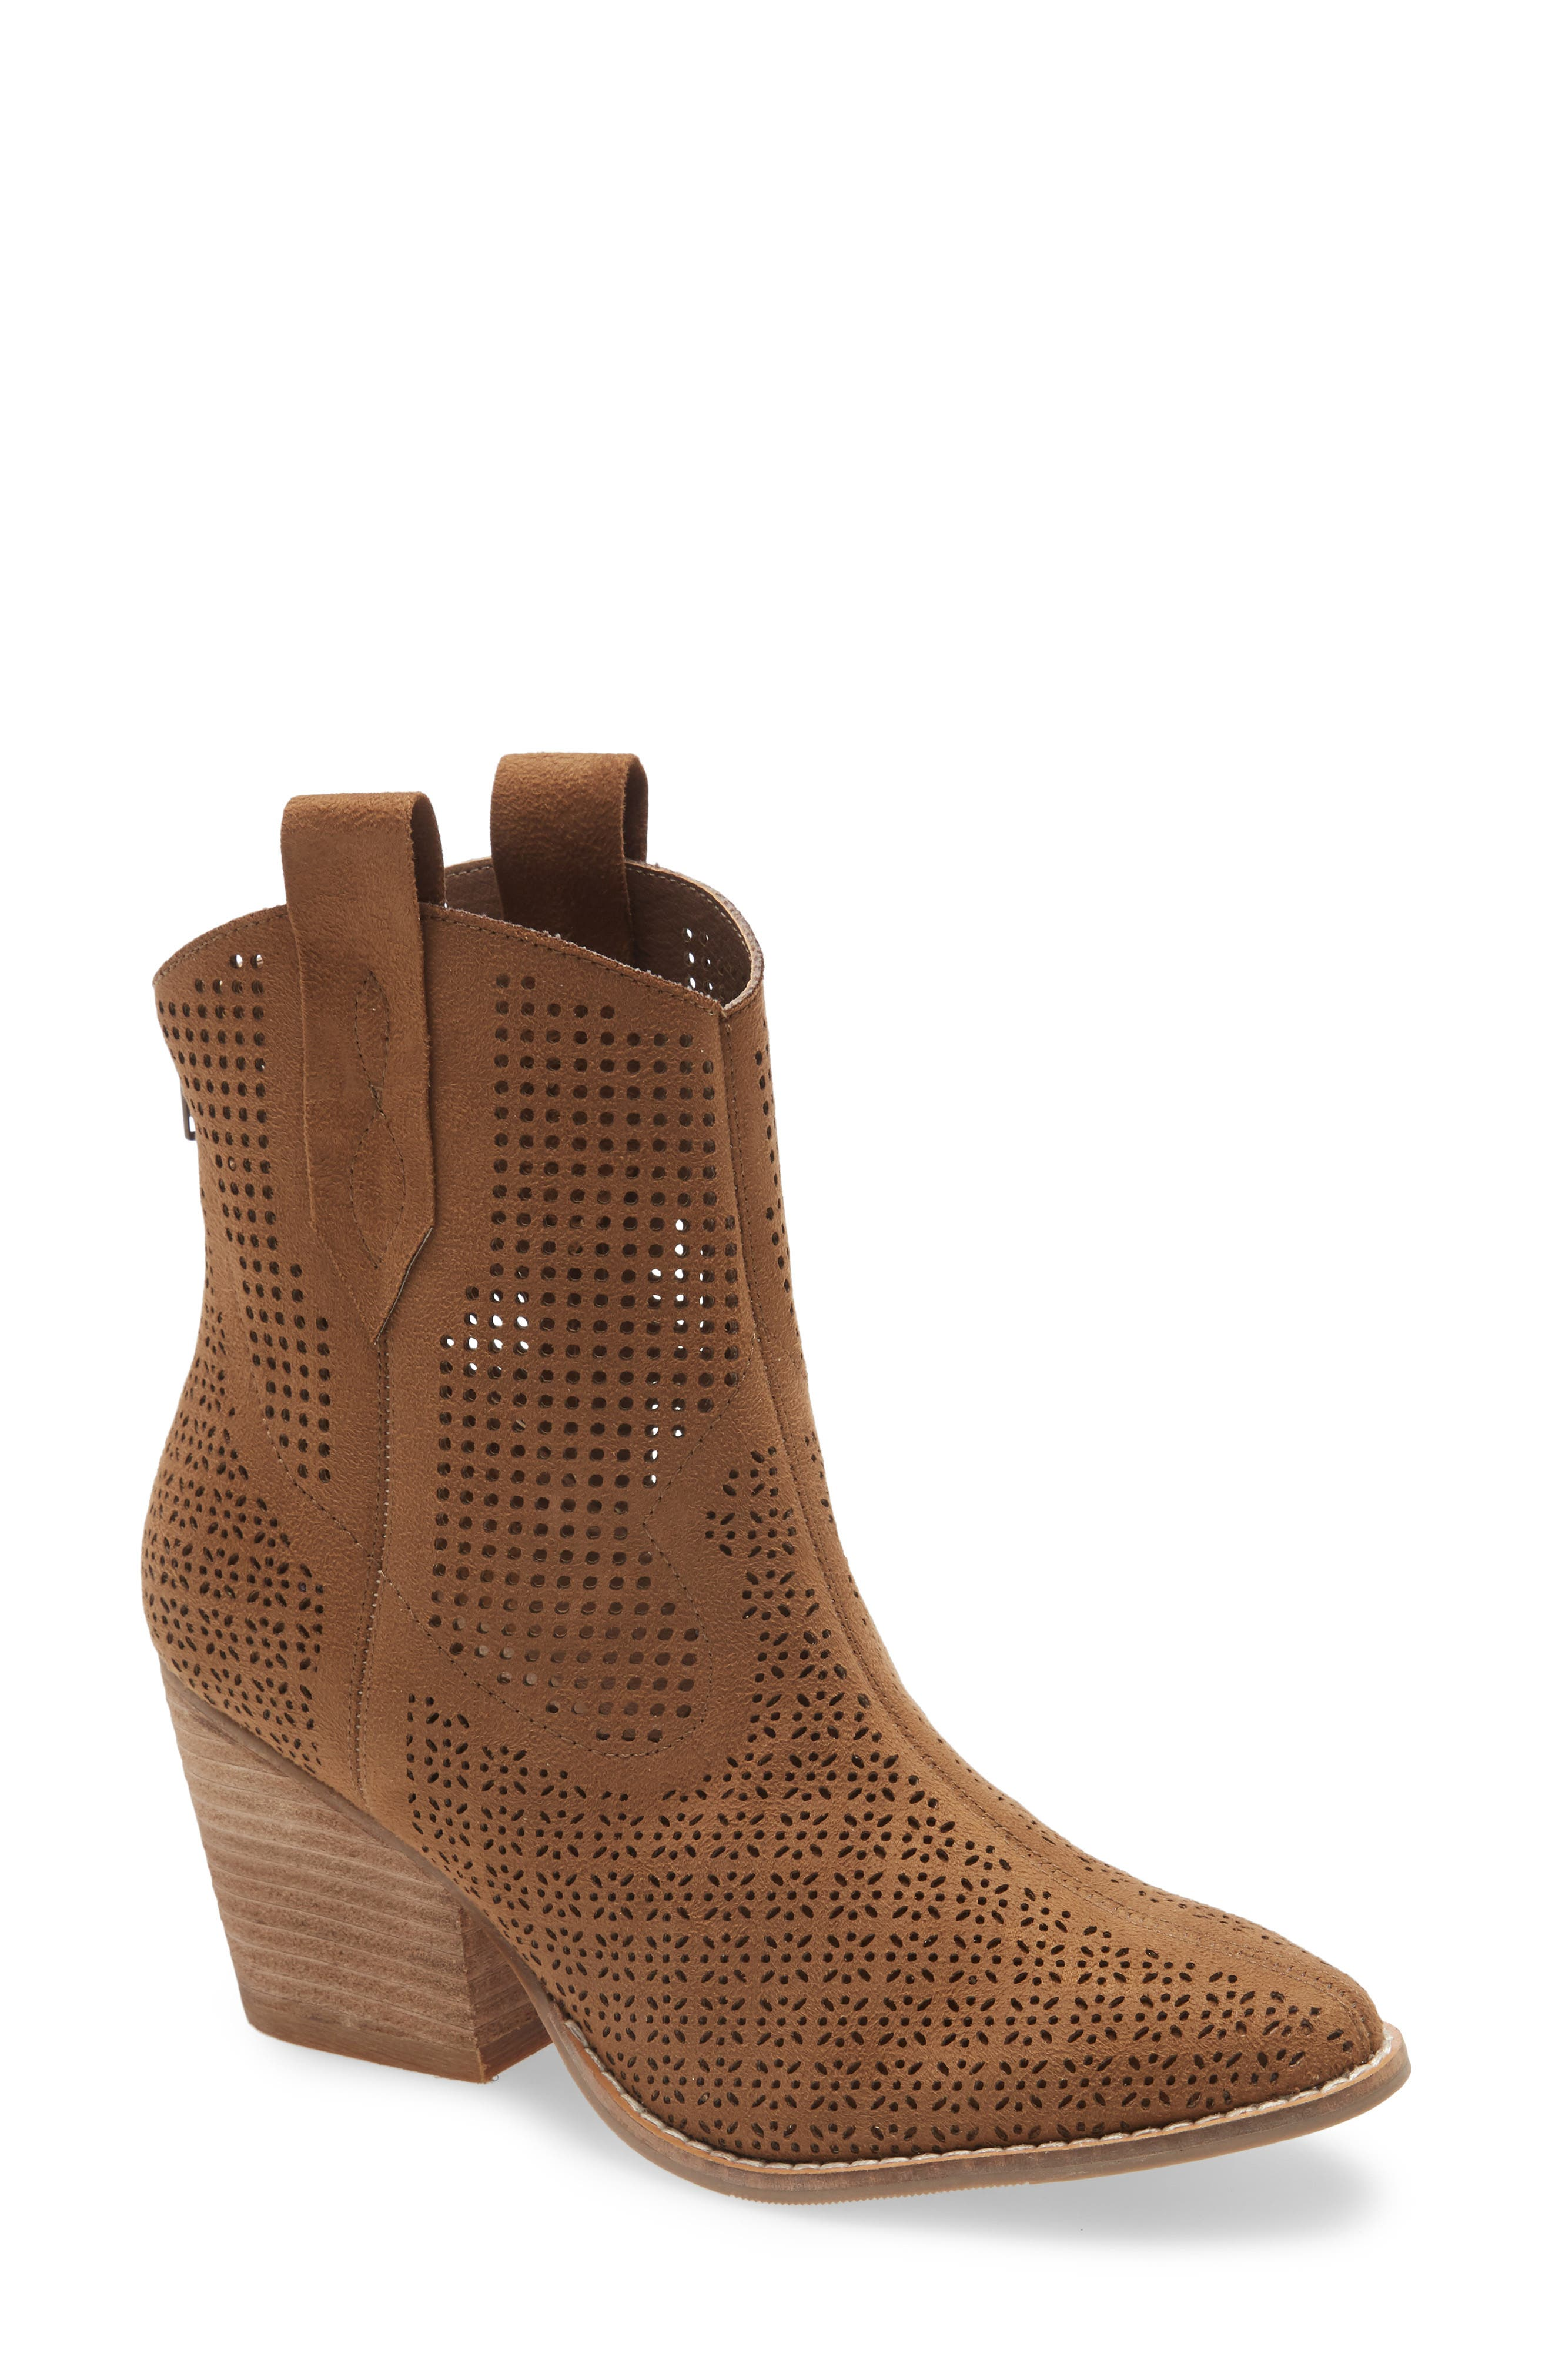 This boot is like a breath of fresh country air with its mixed perforations updating is classic Western look. Style Name: Coconuts By Matisse Backroad Boot (Women). Style Number: 5987478. Available in stores.